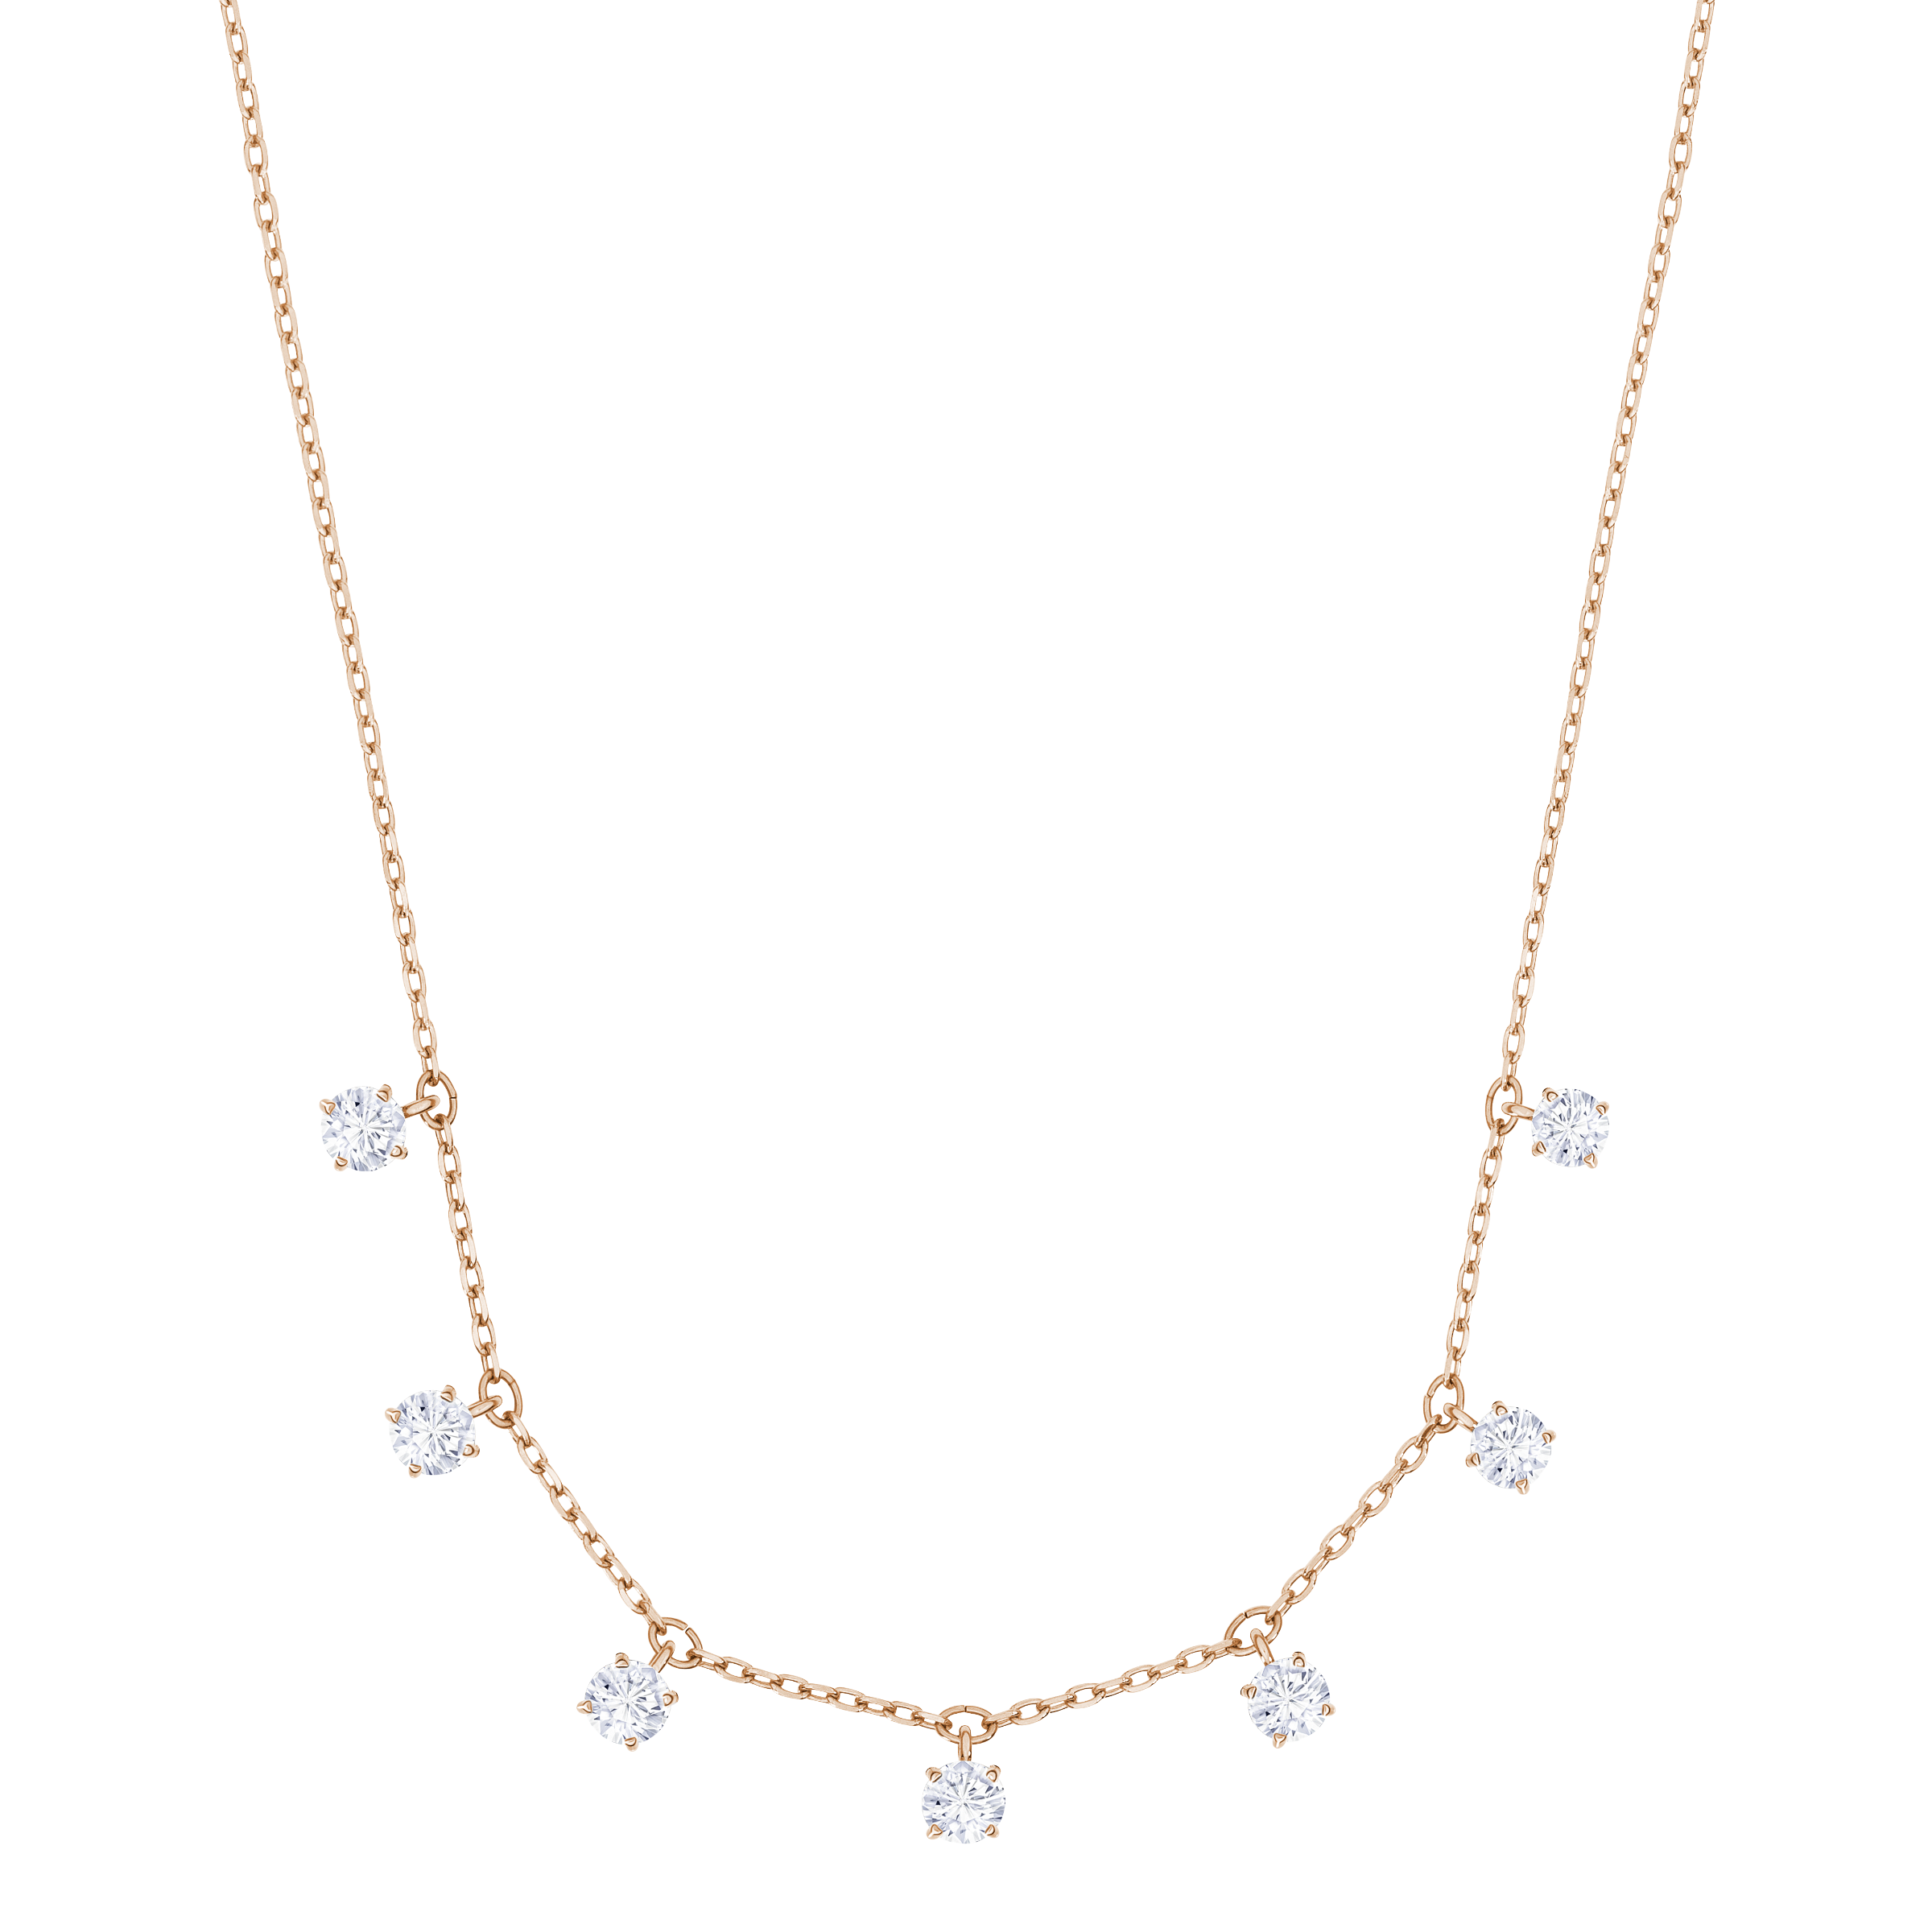 Attract Choker, White, Rose-gold tone plated